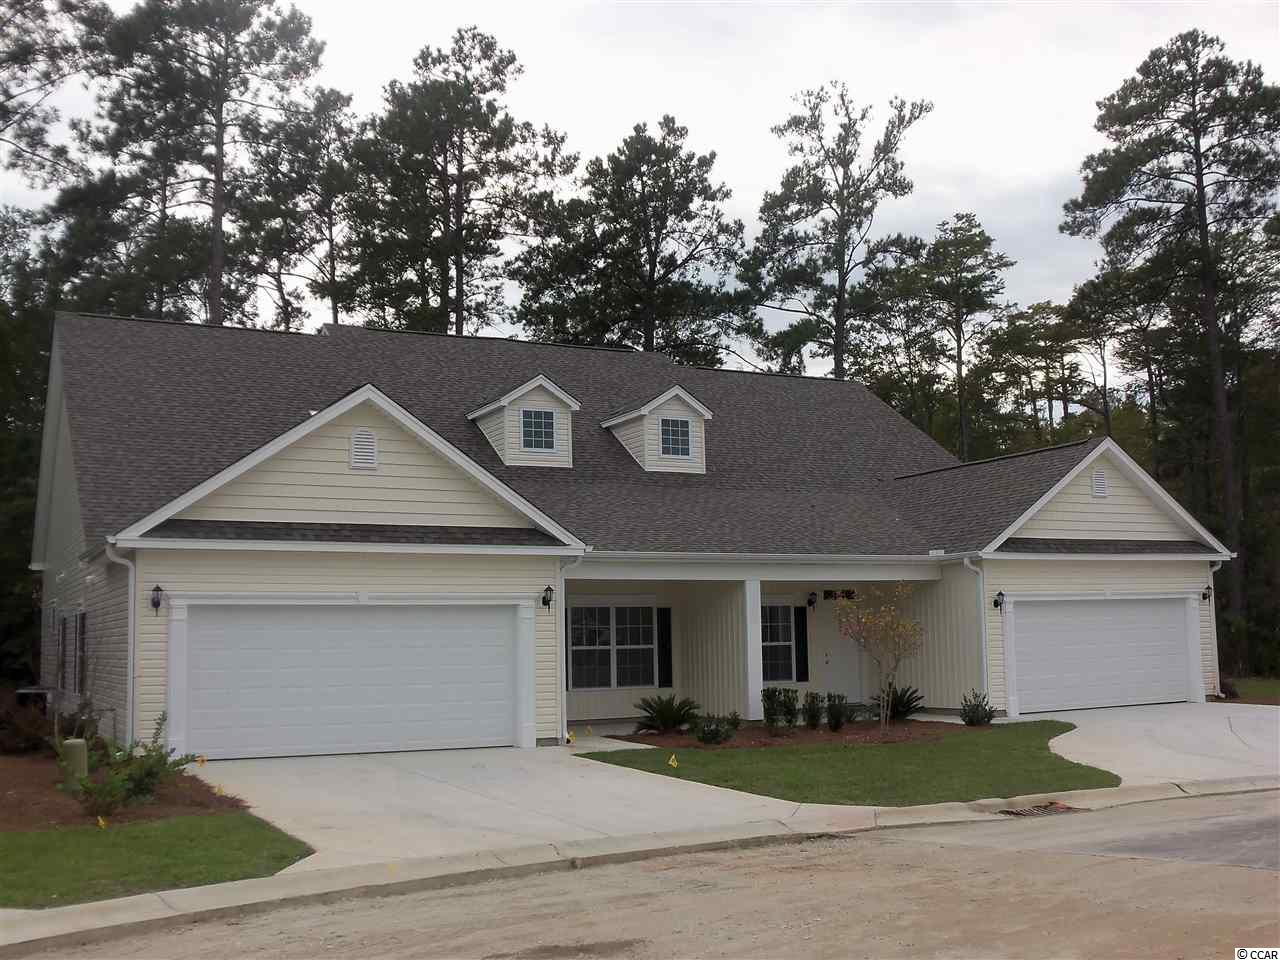 1/2 Duplex MLS:1812062 Marcliffe West at Blackmoor  678 Sunnyside Dr. Murrells Inlet SC